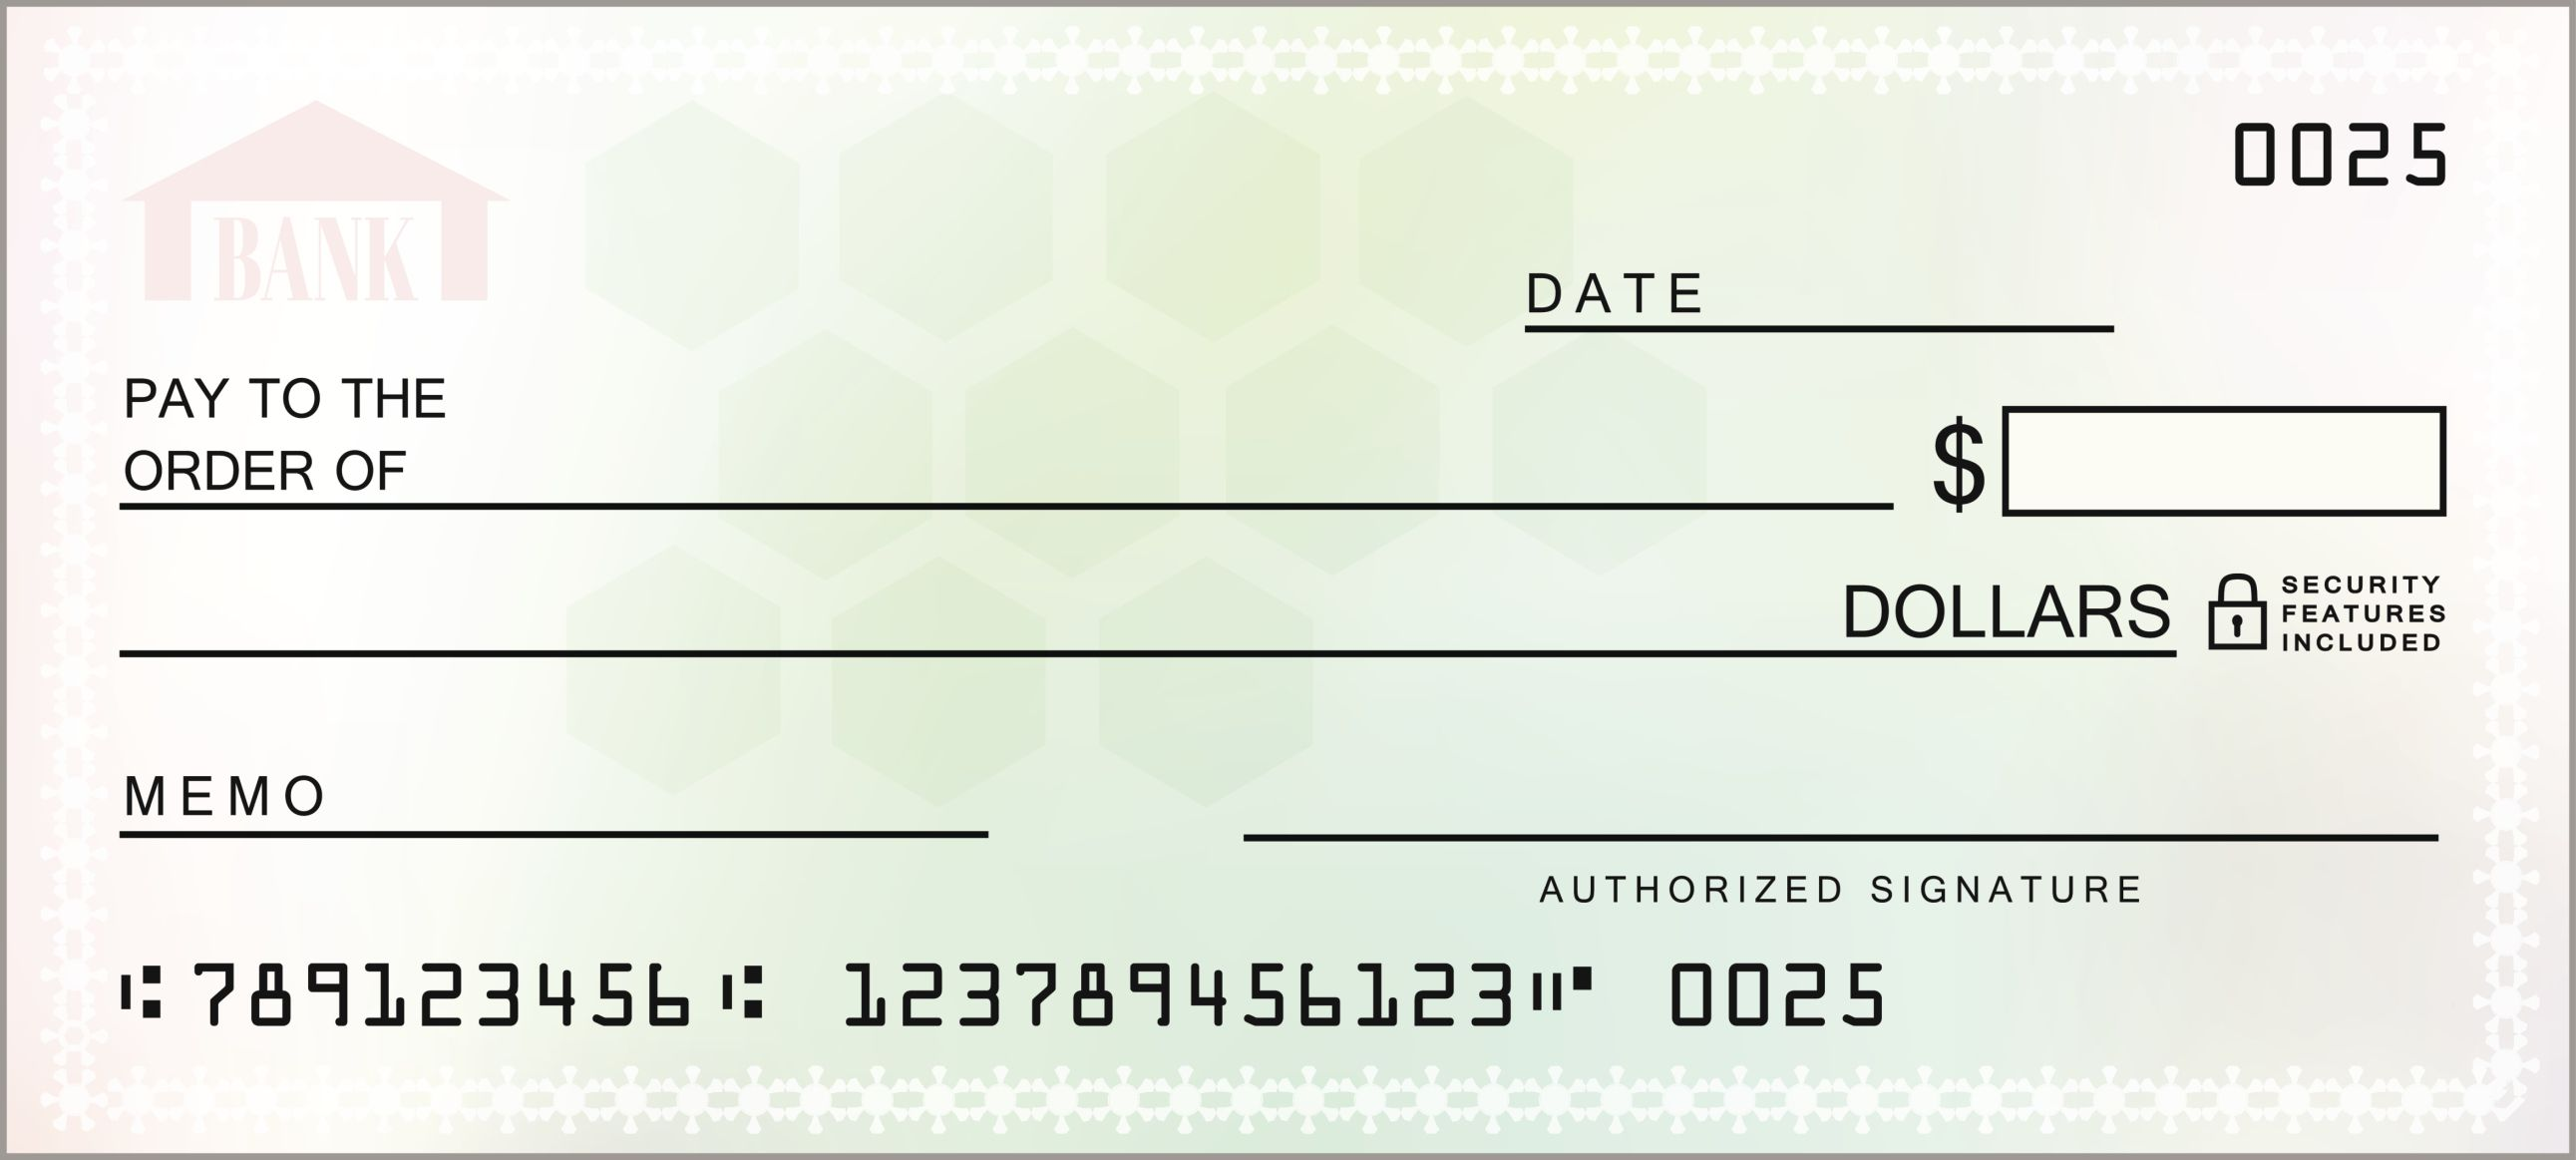 pros and cons of writing a check to cash, Powerpoint templates